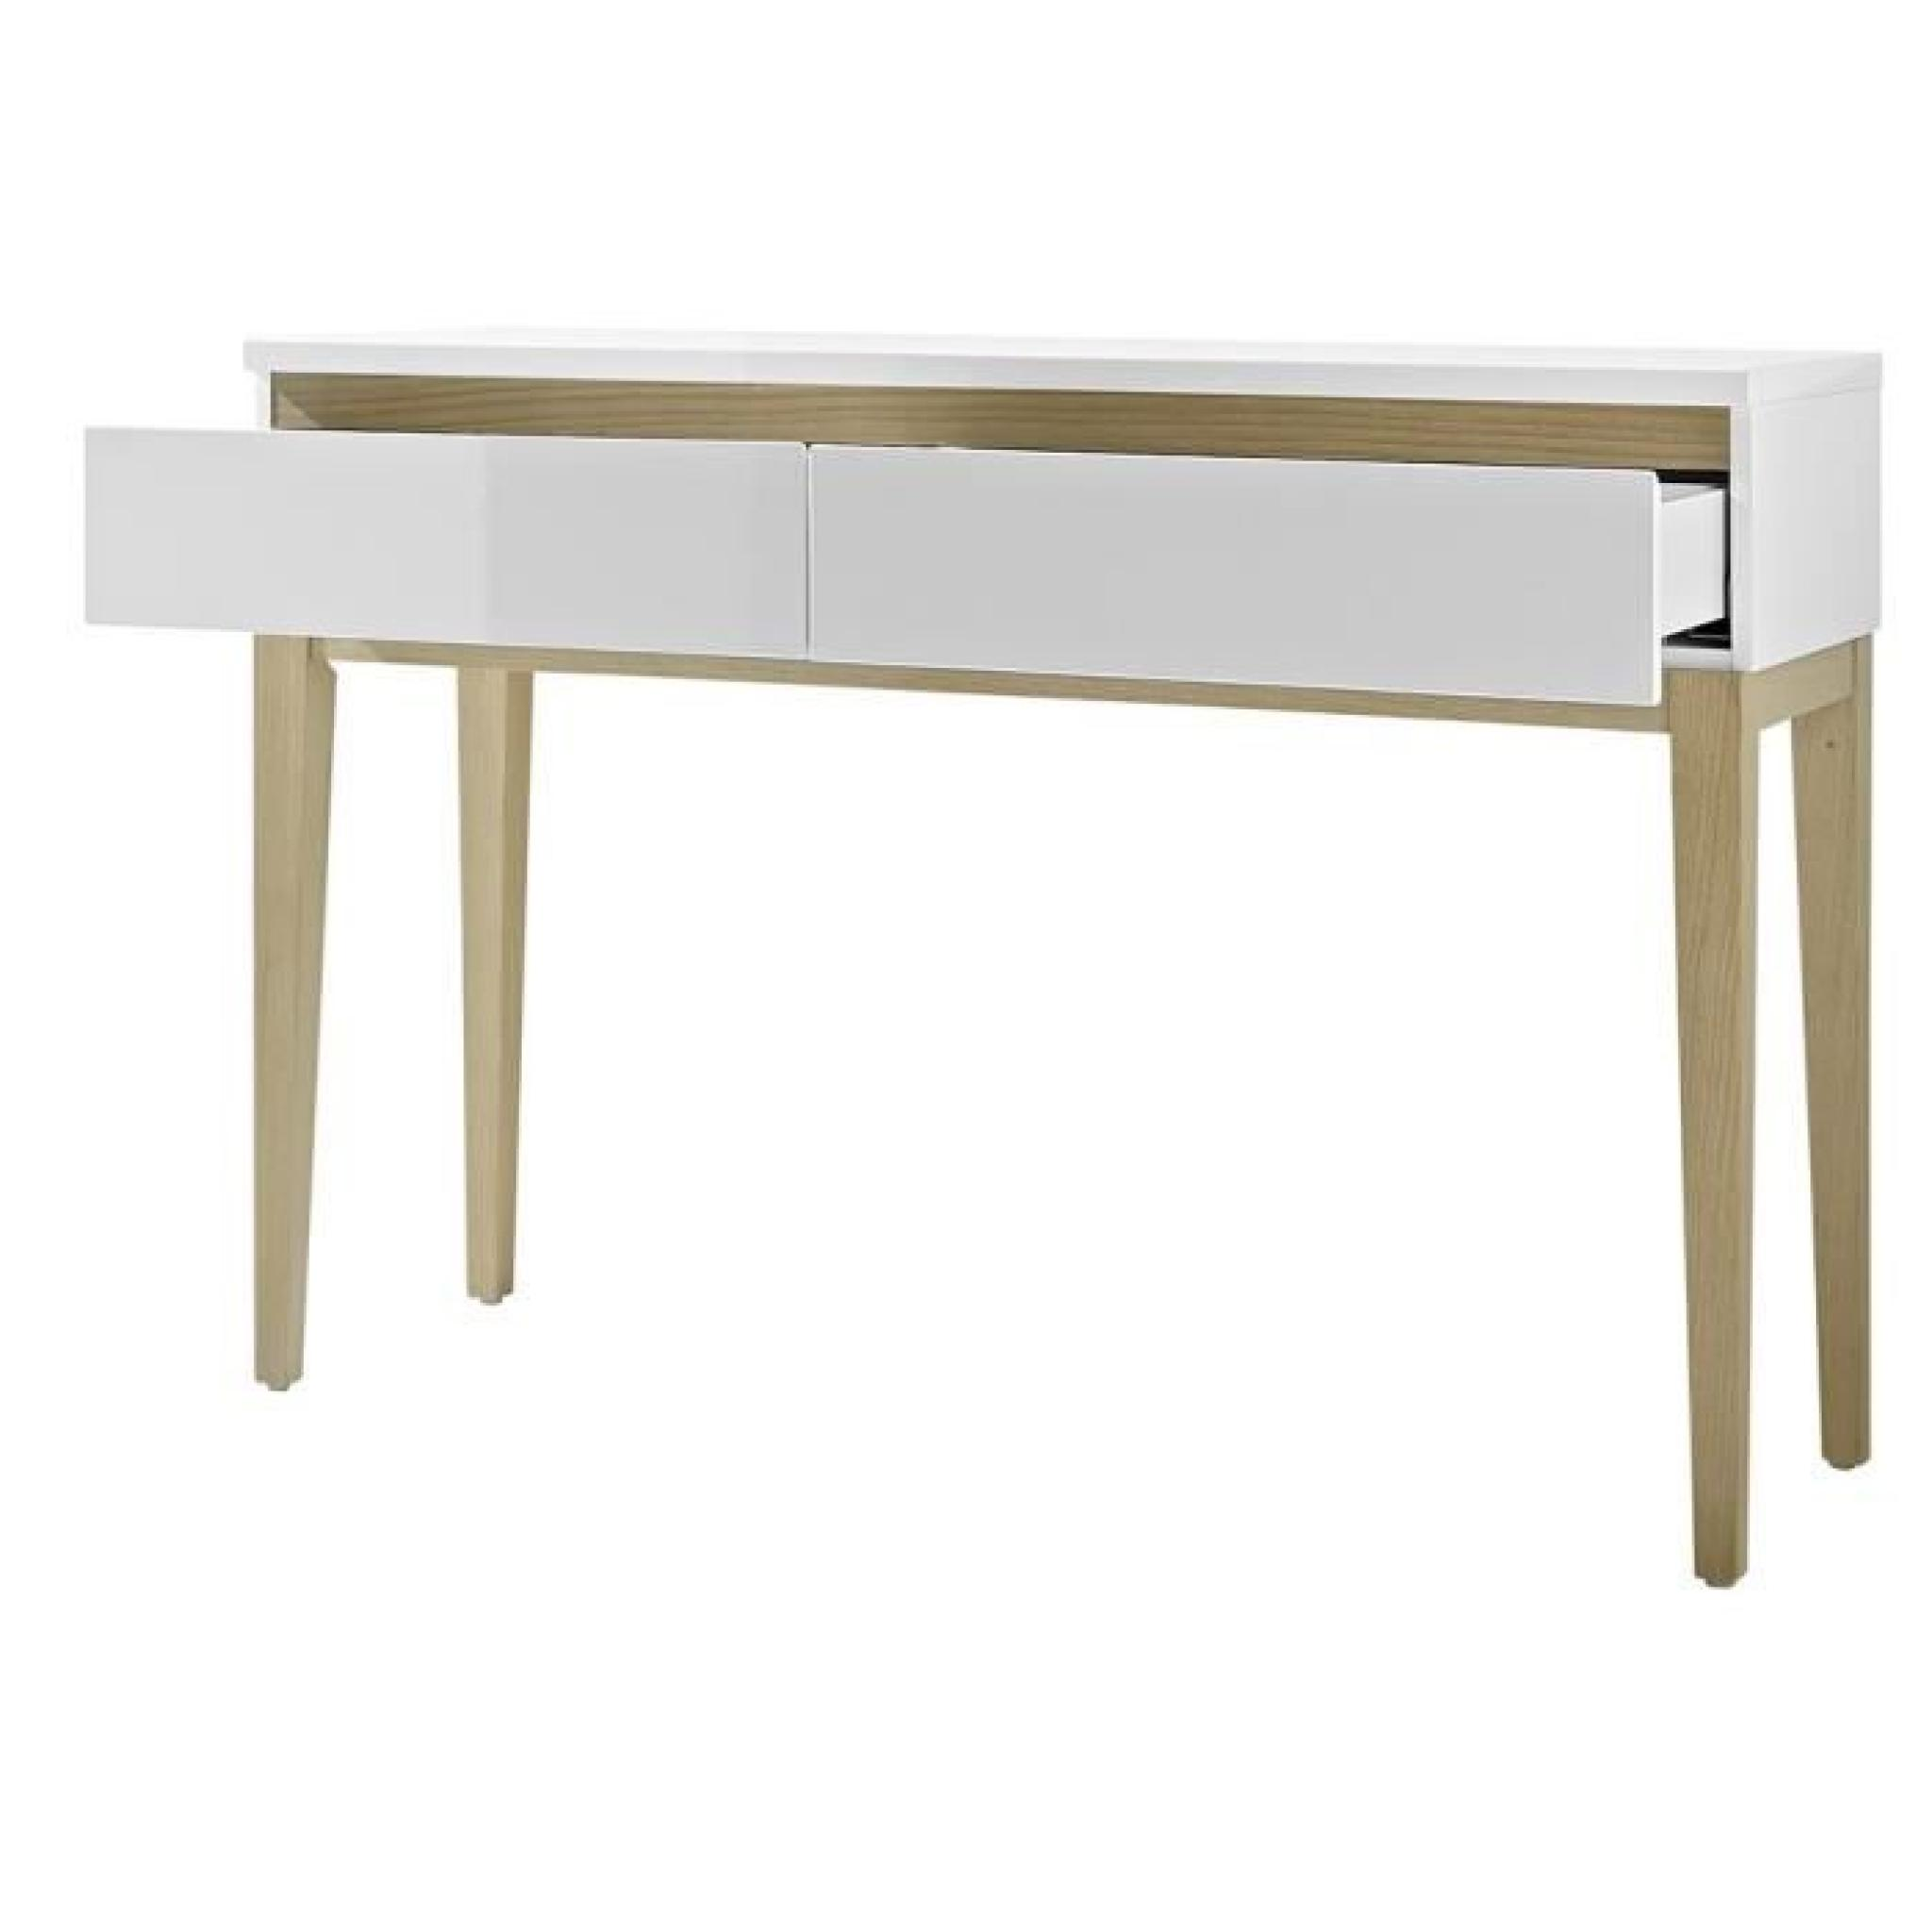 console riva blanc laqu achat vente console meuble pas cher couleur et. Black Bedroom Furniture Sets. Home Design Ideas